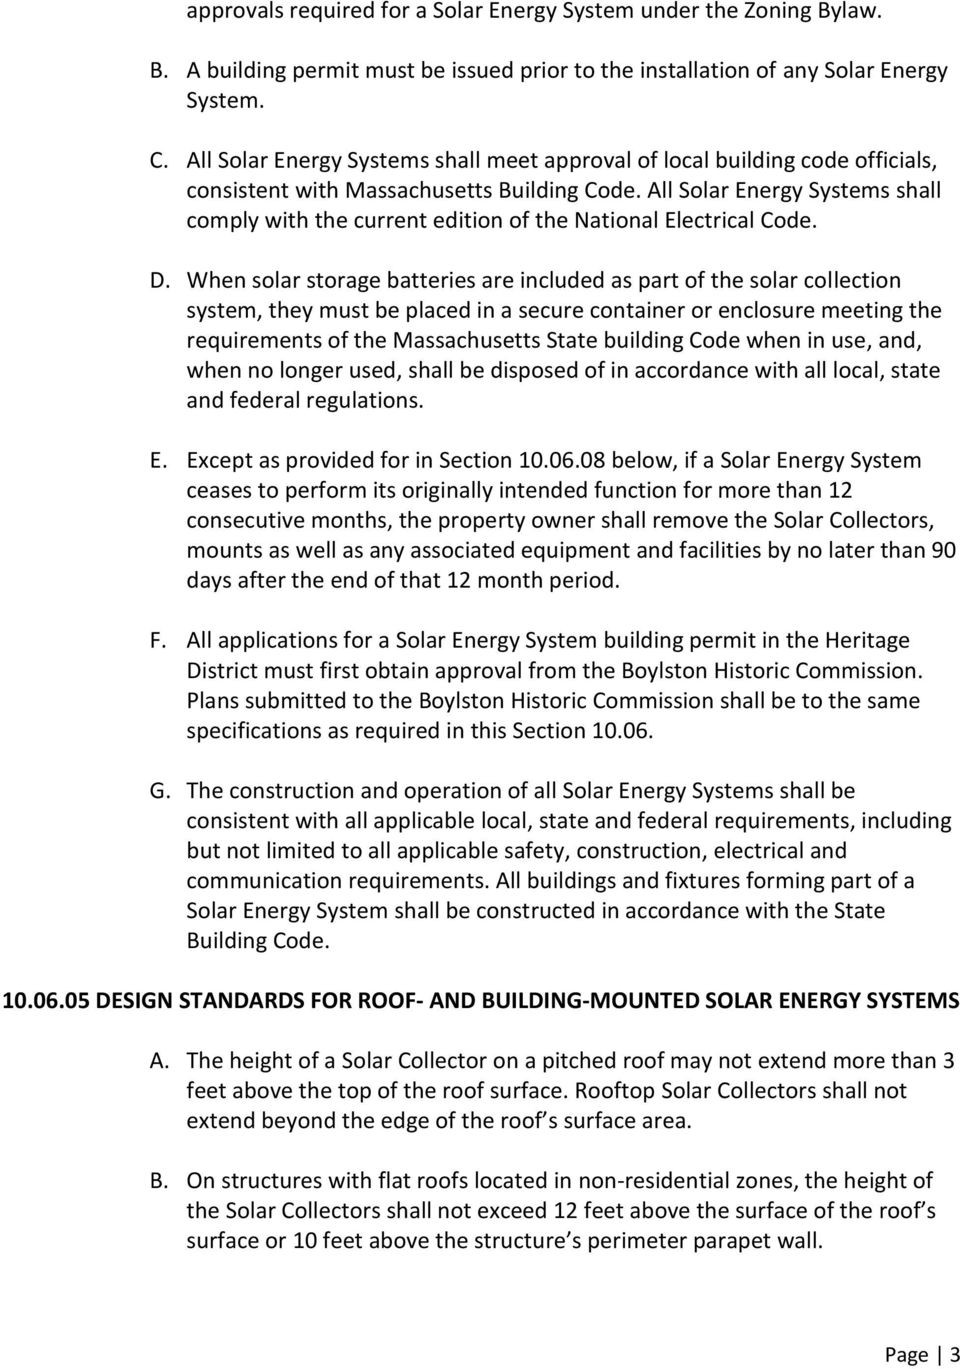 All Solar Energy Systems shall comply with the current edition of the National Electrical Code. D.